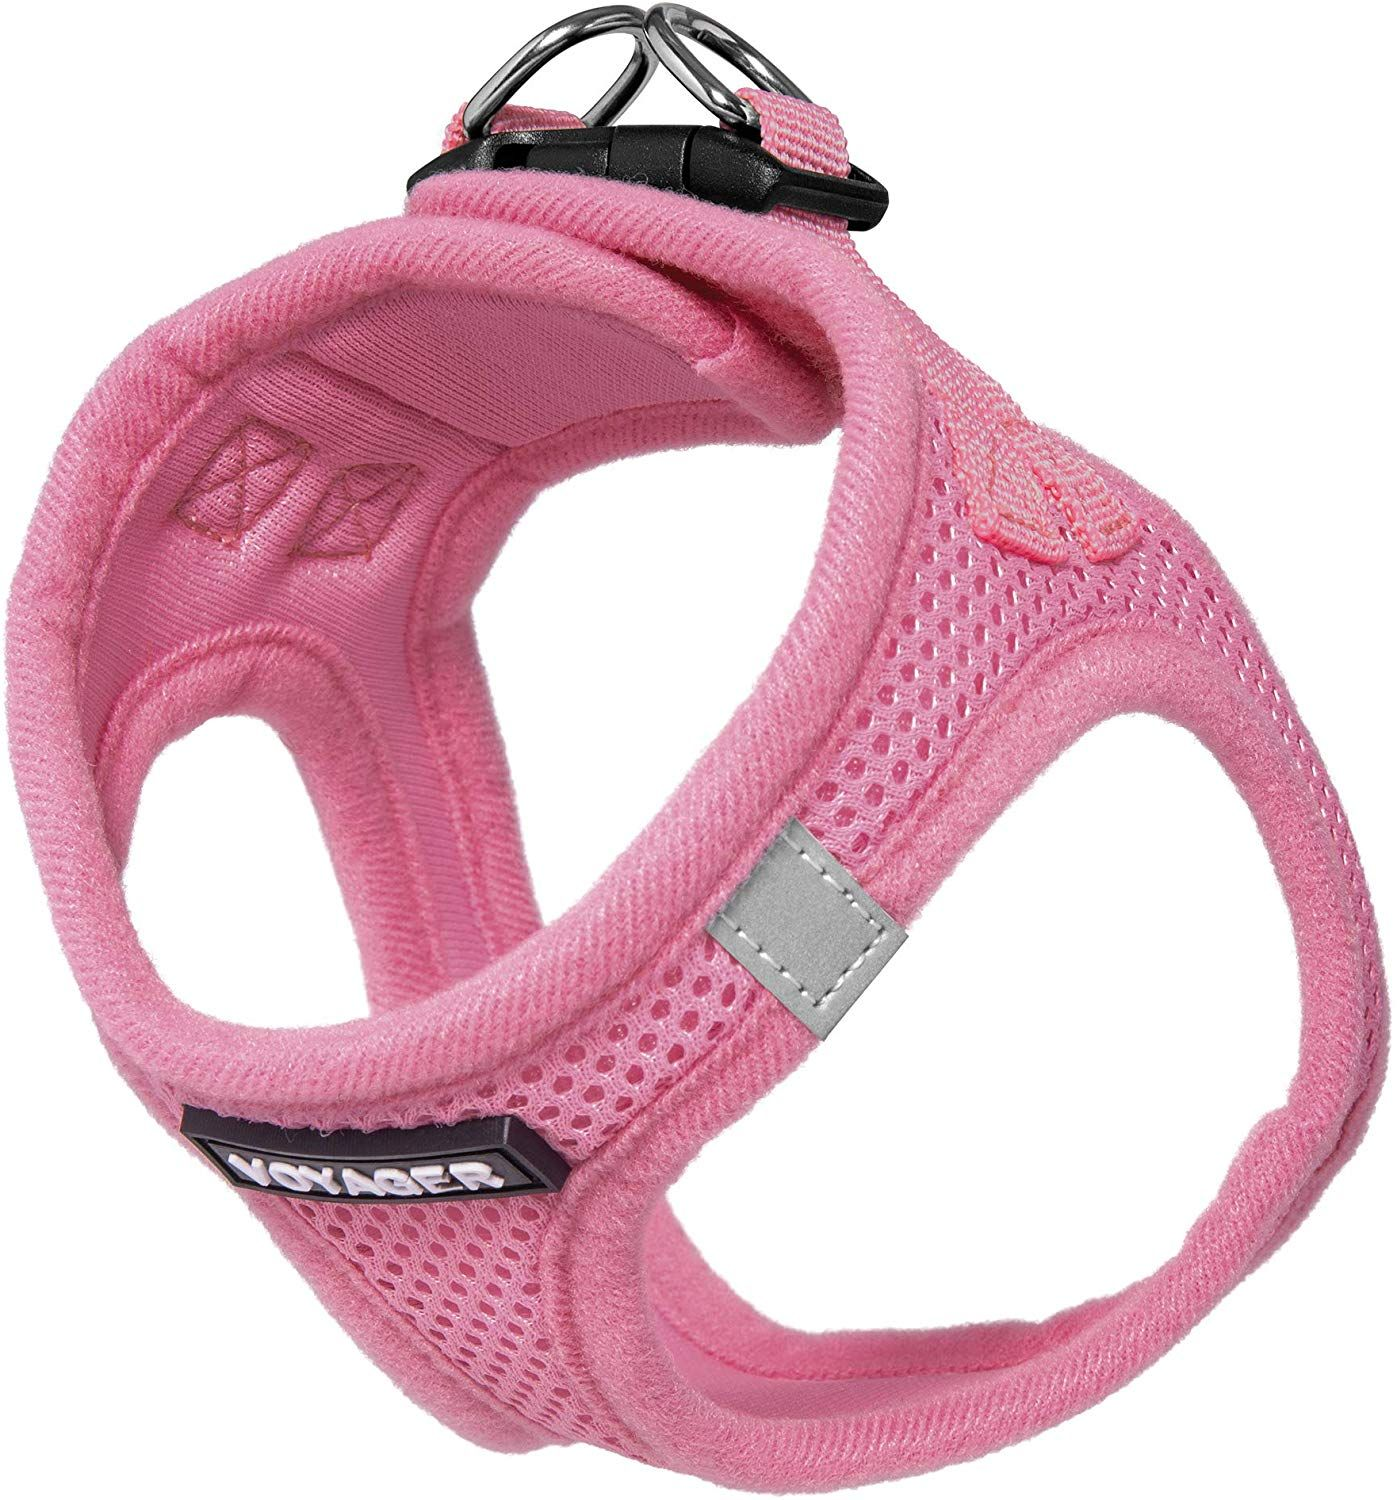 Best Pet Supplies Voyager All Weather No Pull Step-in Mesh Dog Harness with